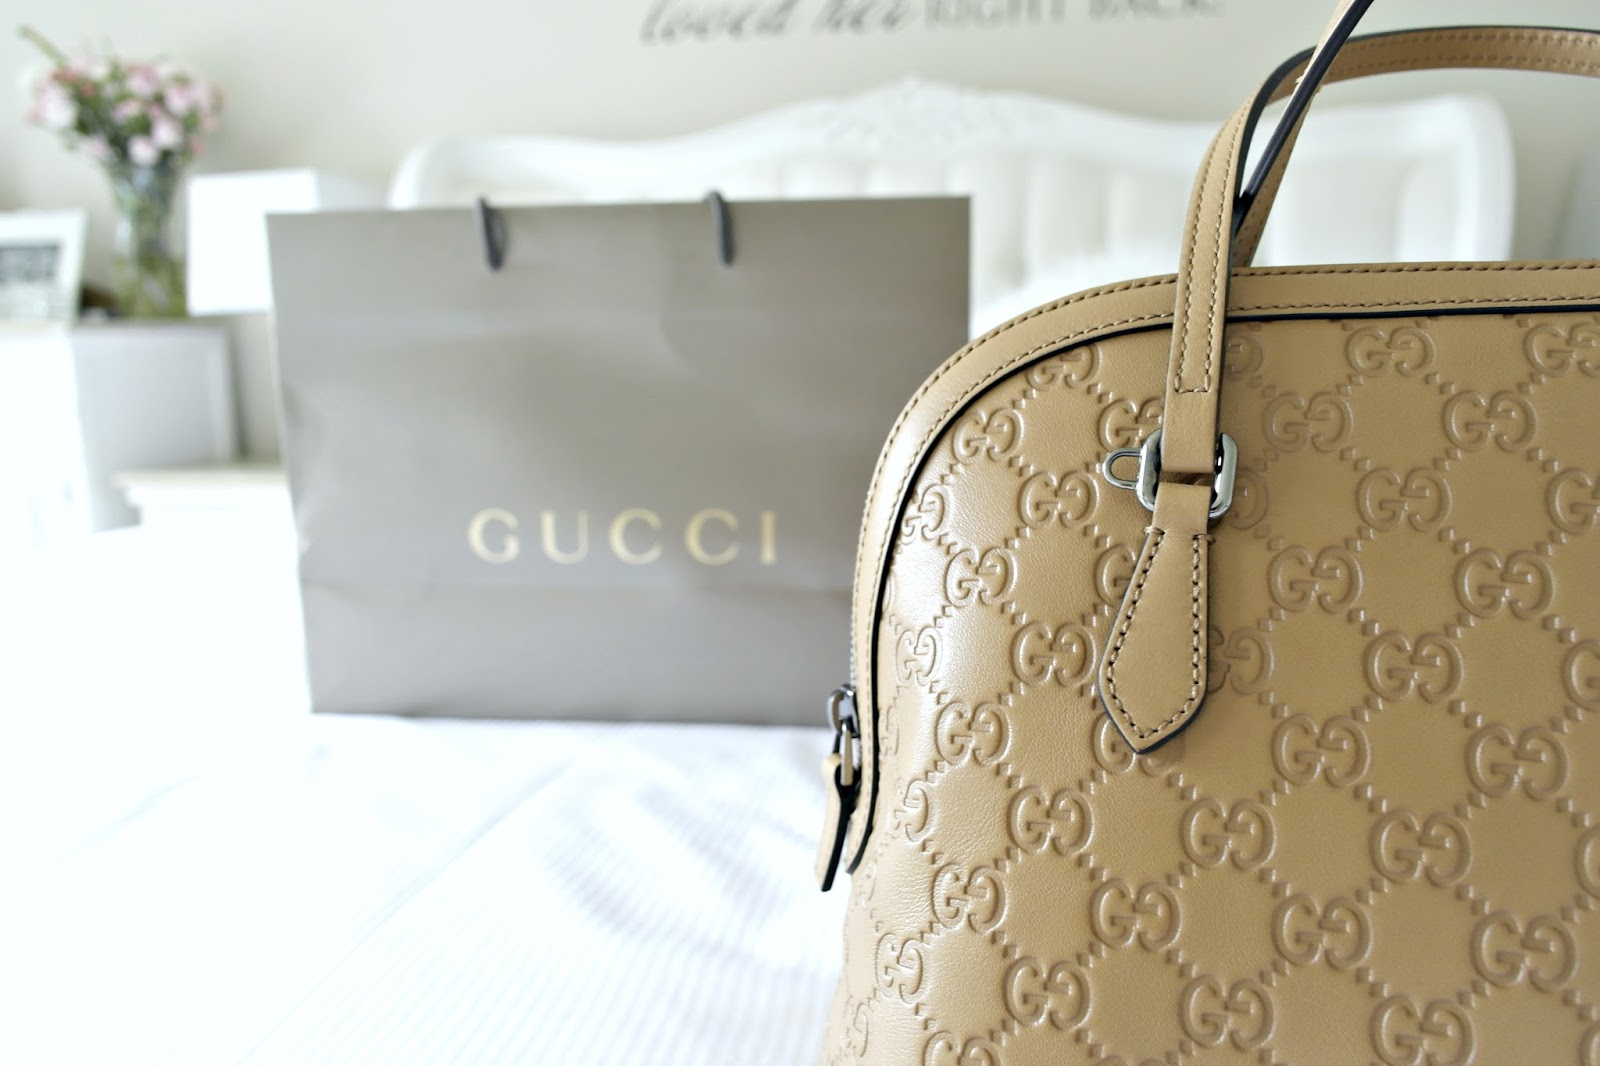 Gucci handbag, bicester village, fashion blogger